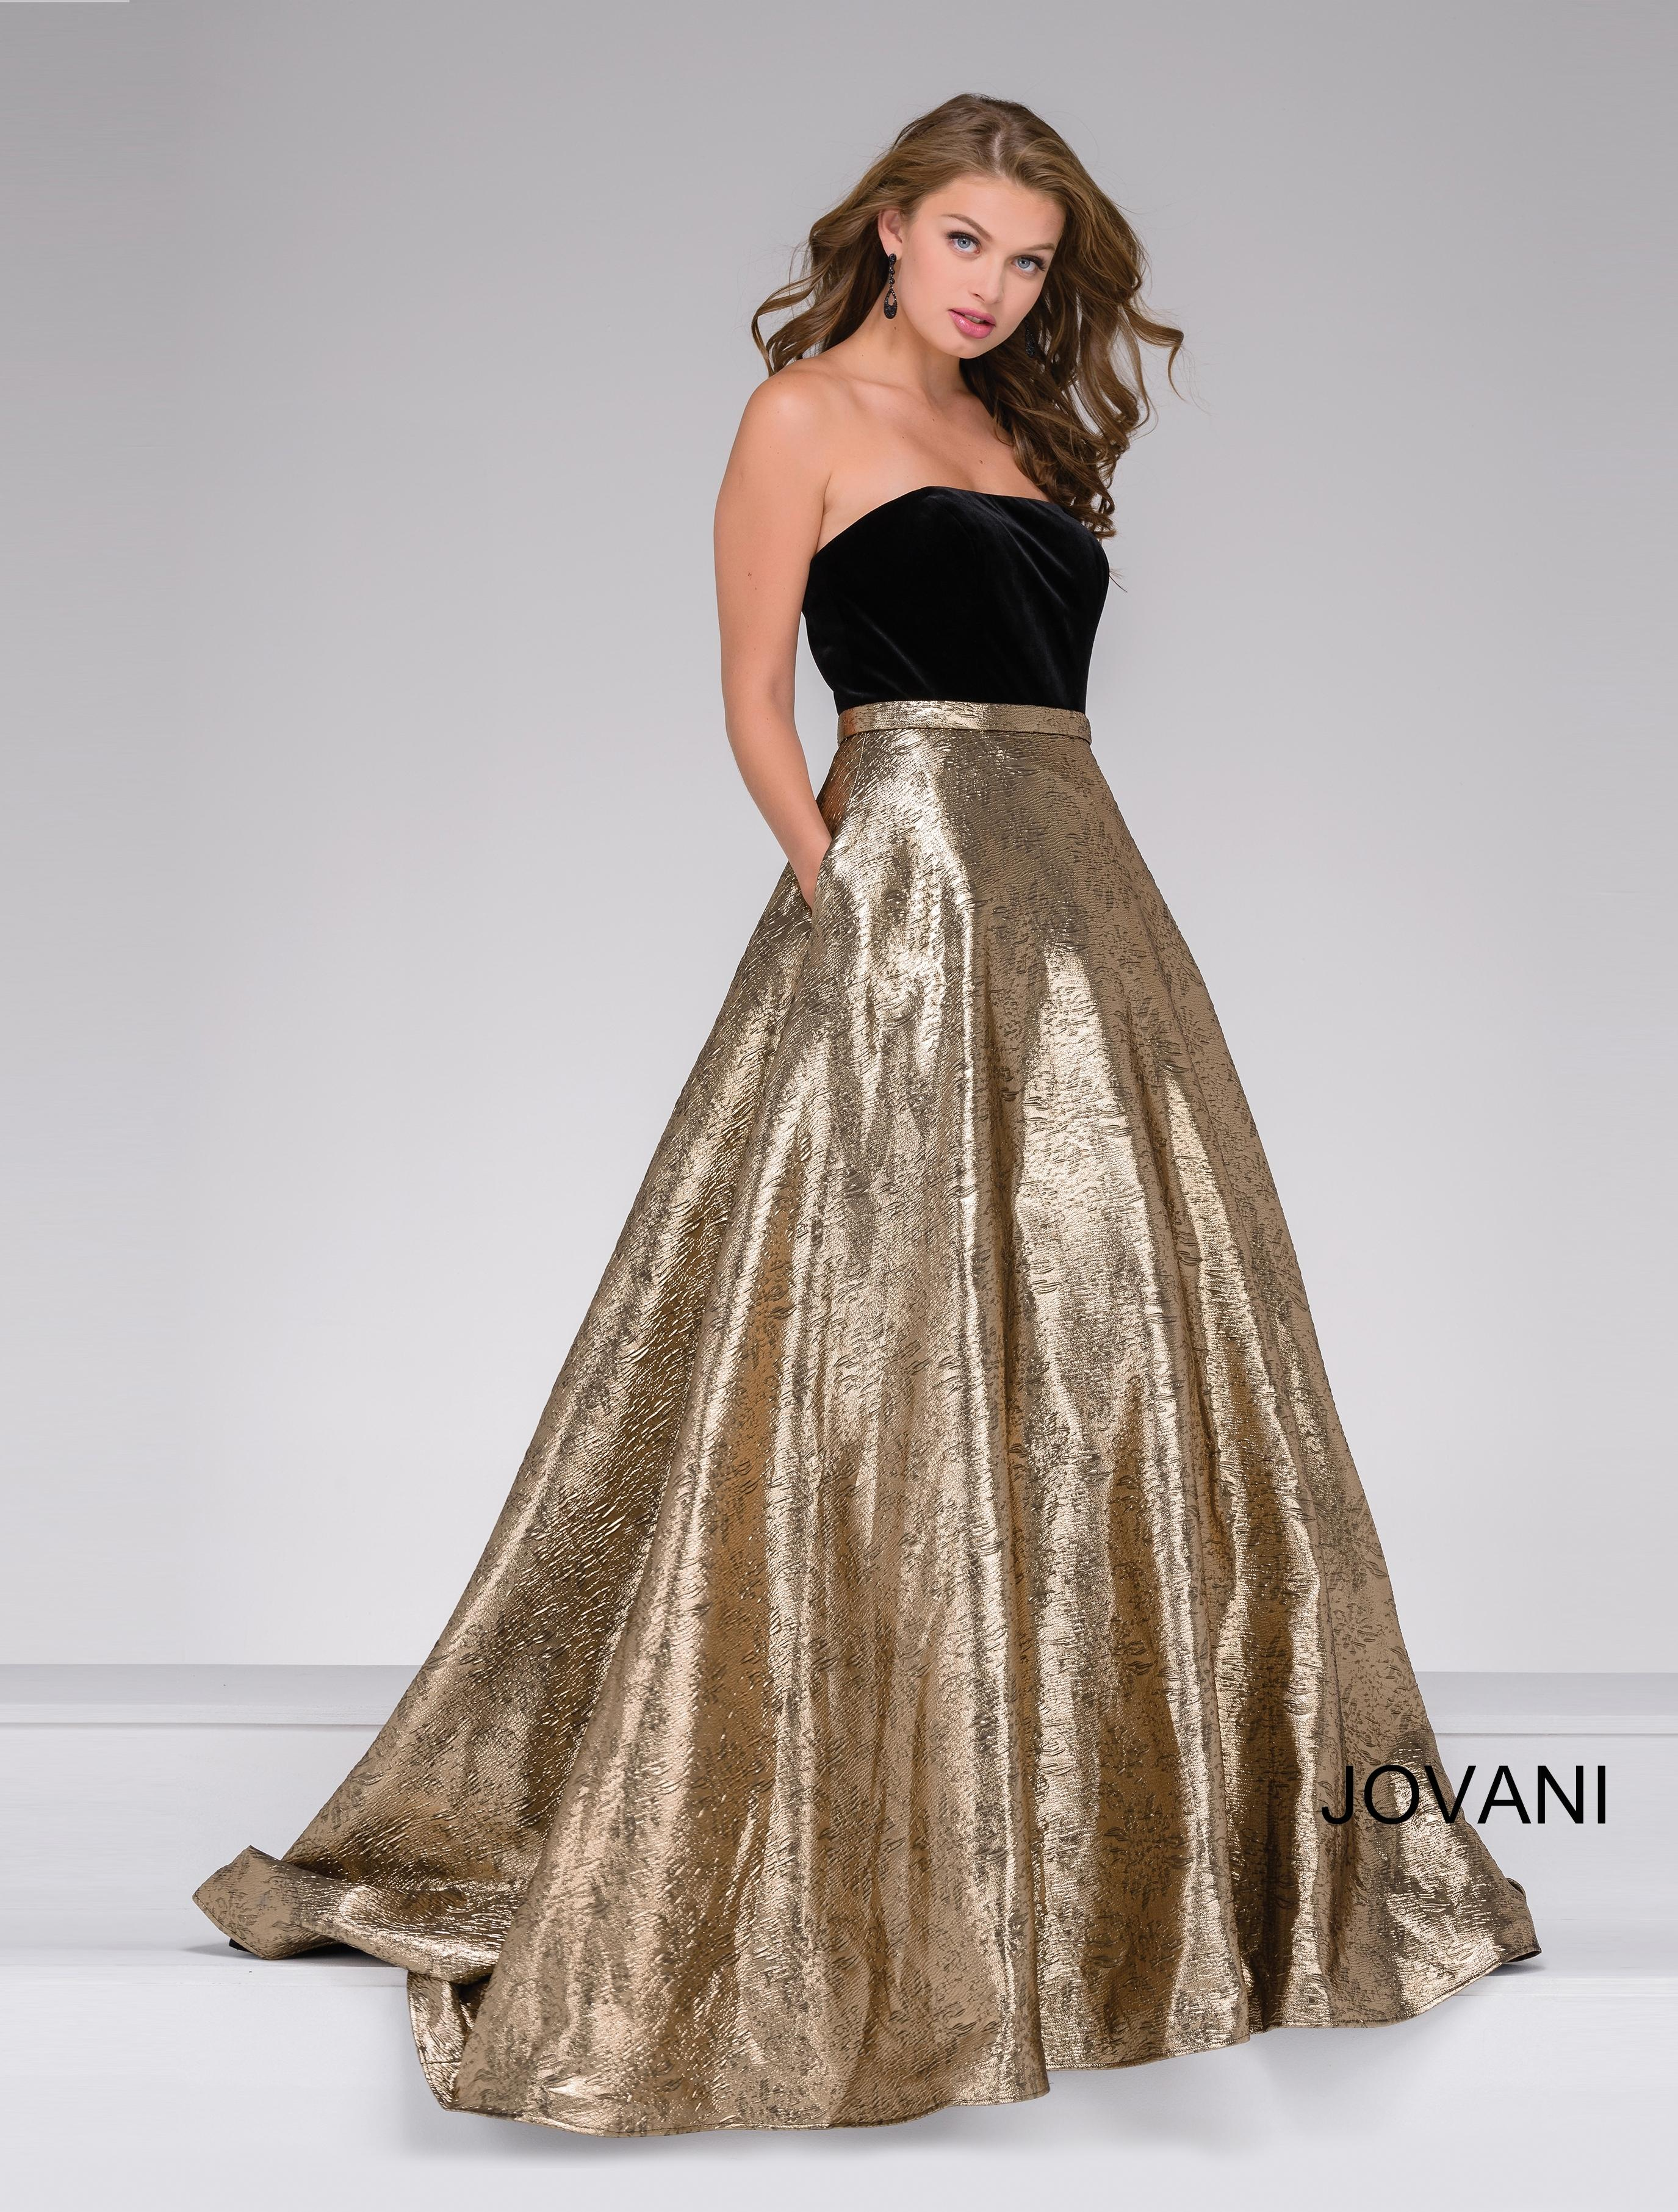 caf36486f958 Jovani Gold Evening Gown